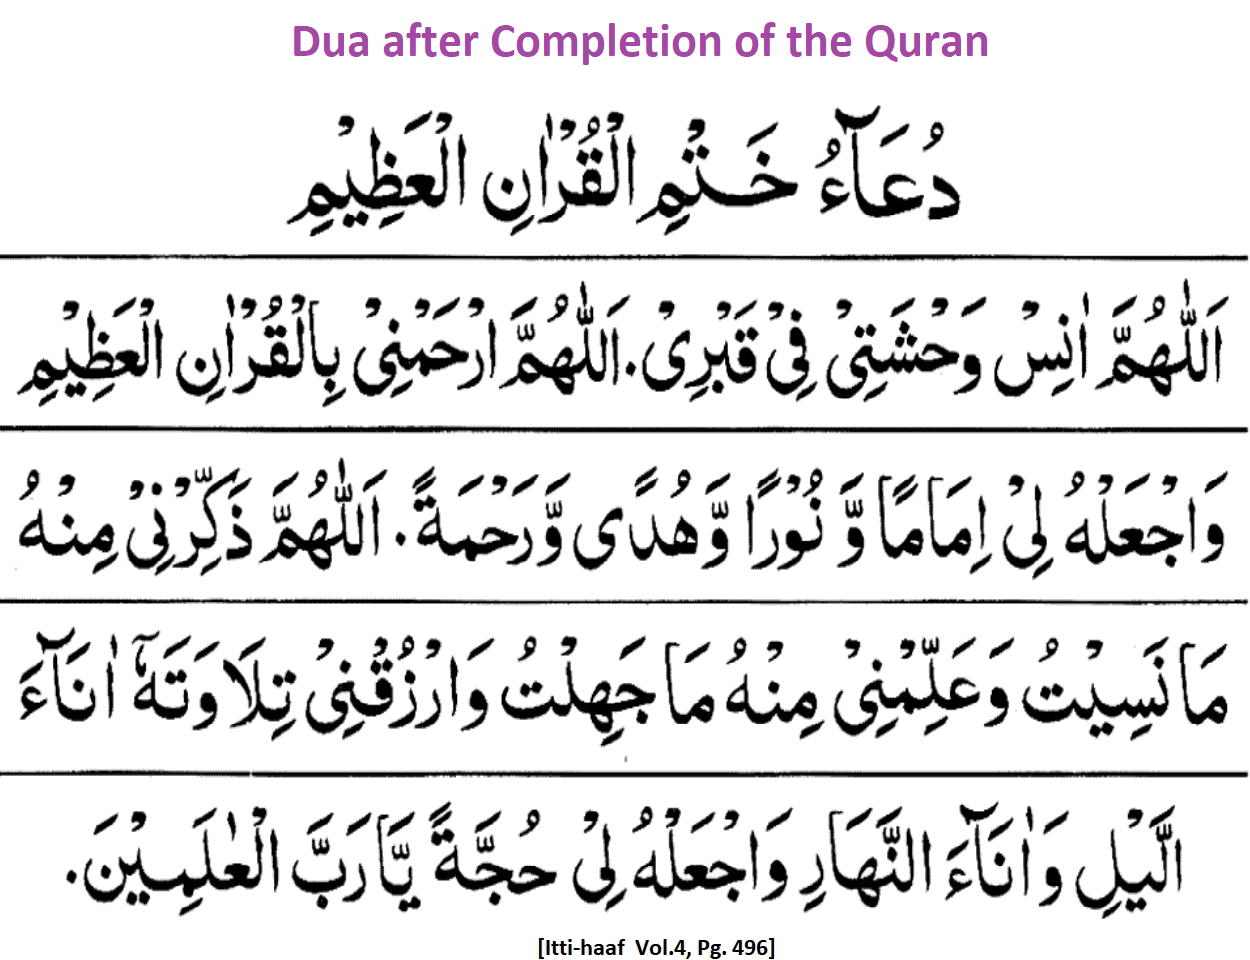 Dua after Completion of the Quran